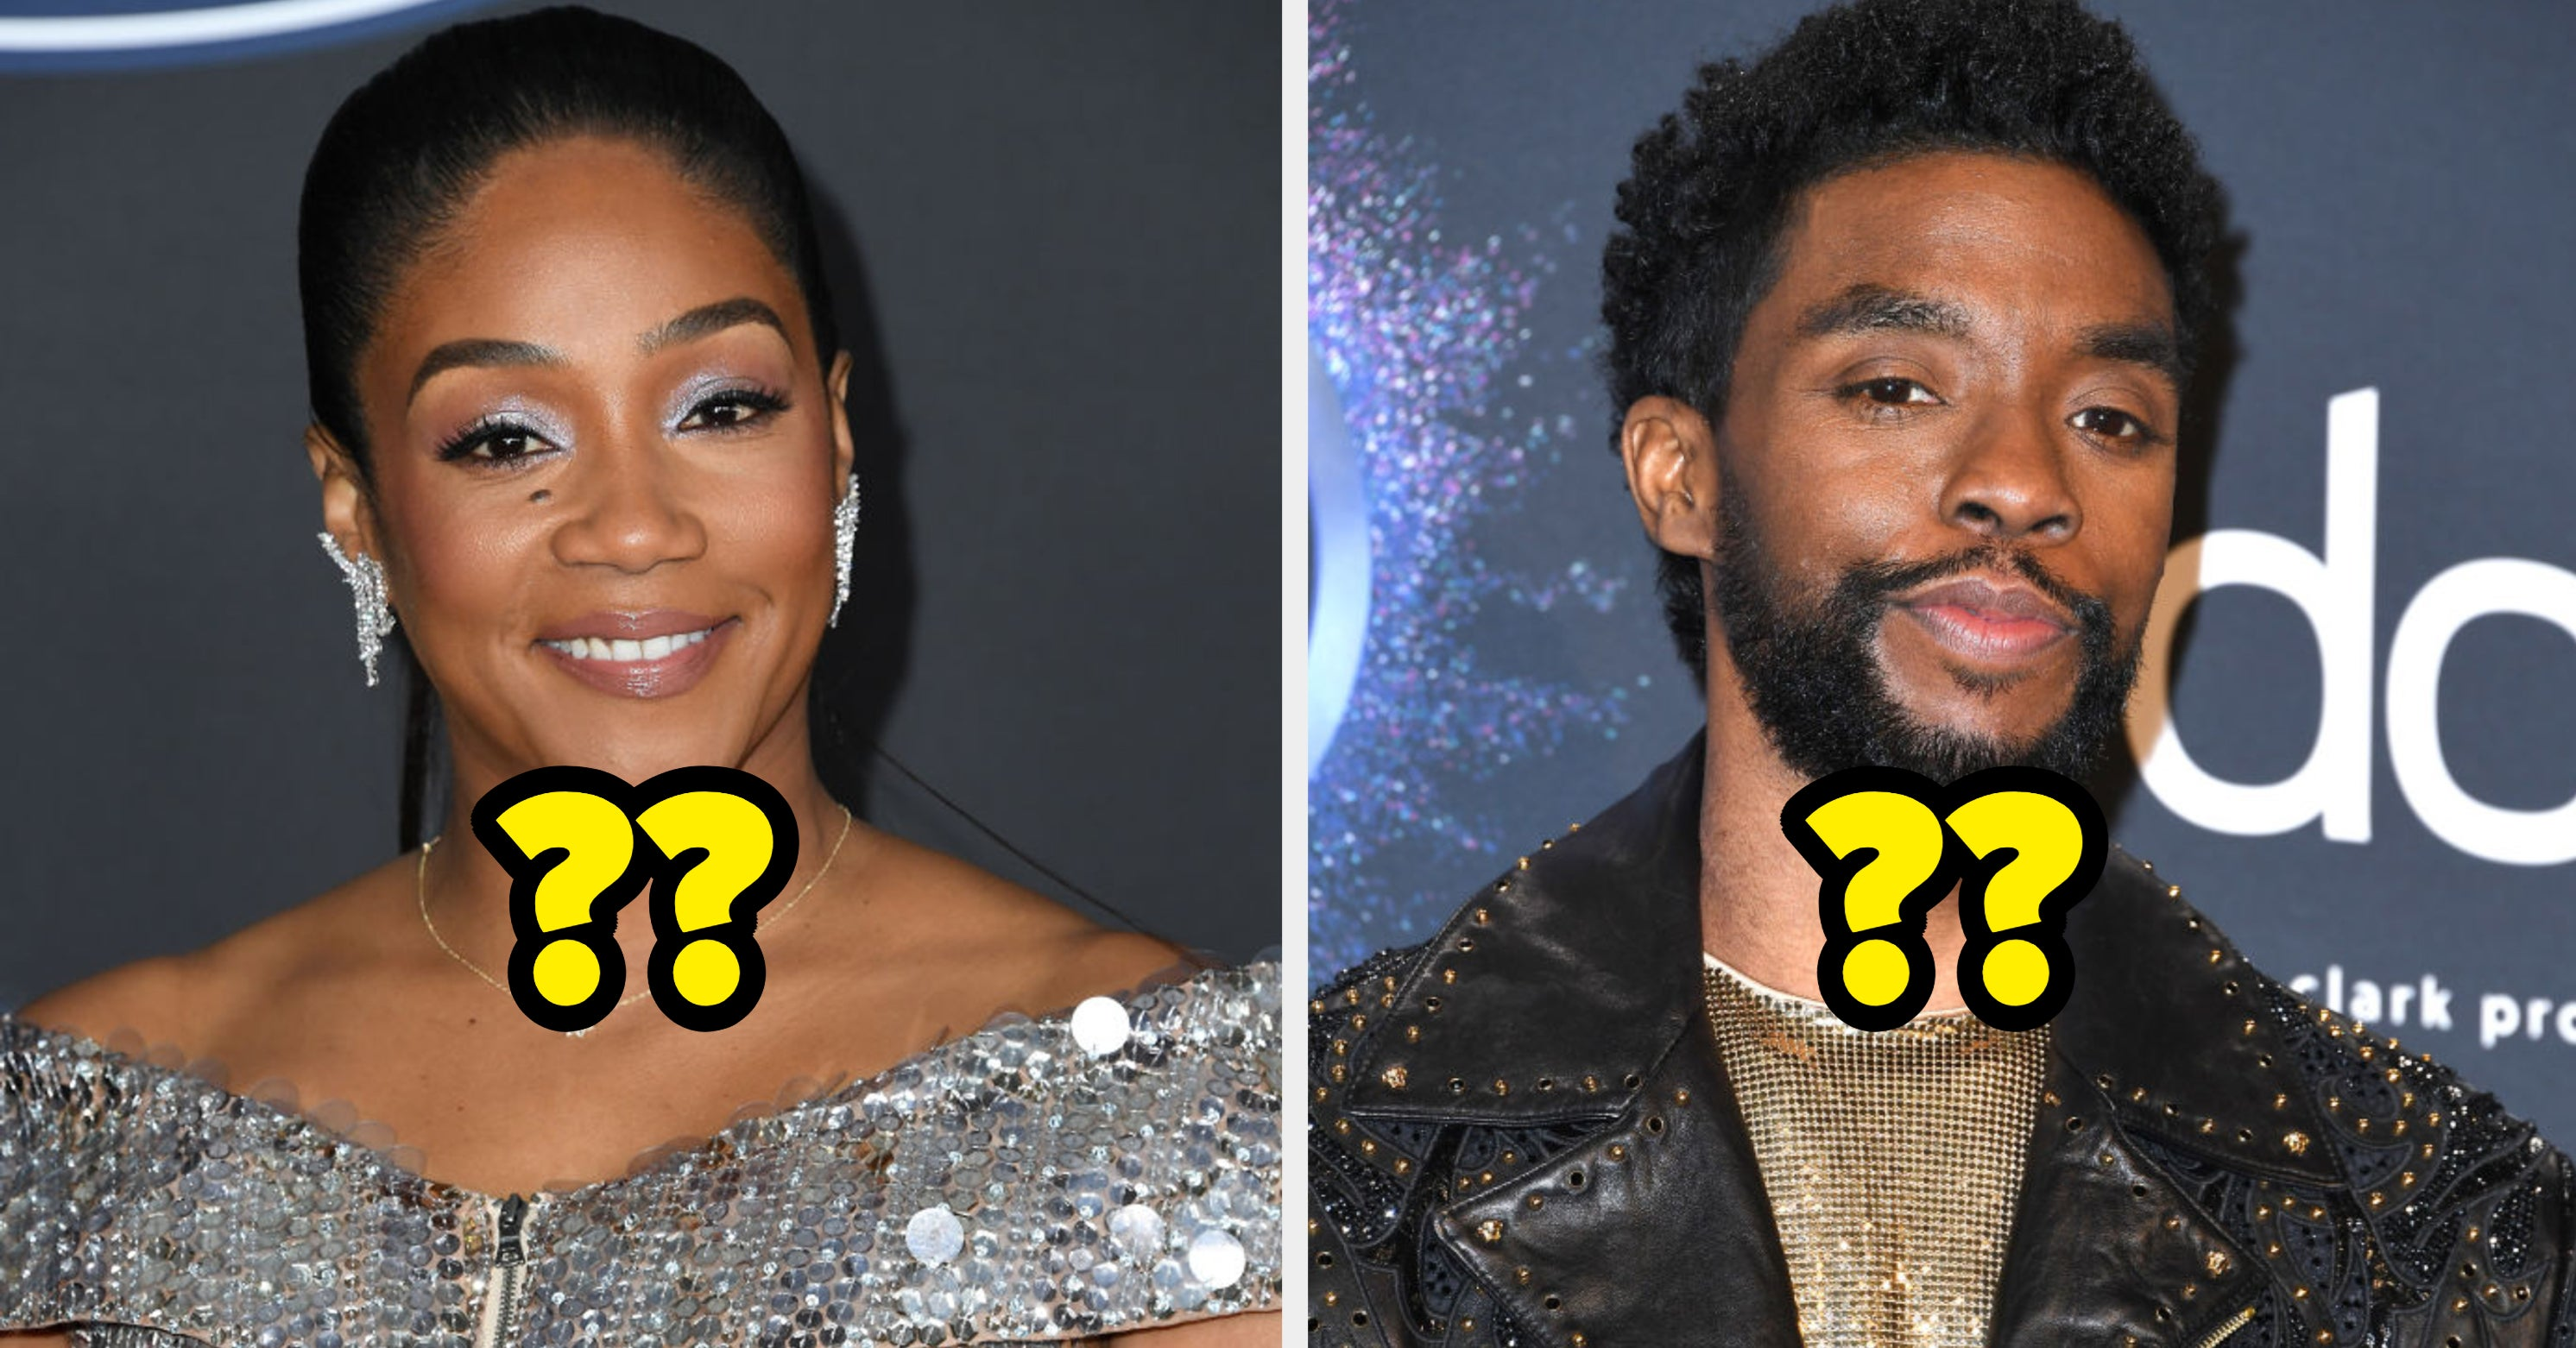 Sorry, There Is Literally No Way You Can Guess These Black Celebs' Ages Correctly